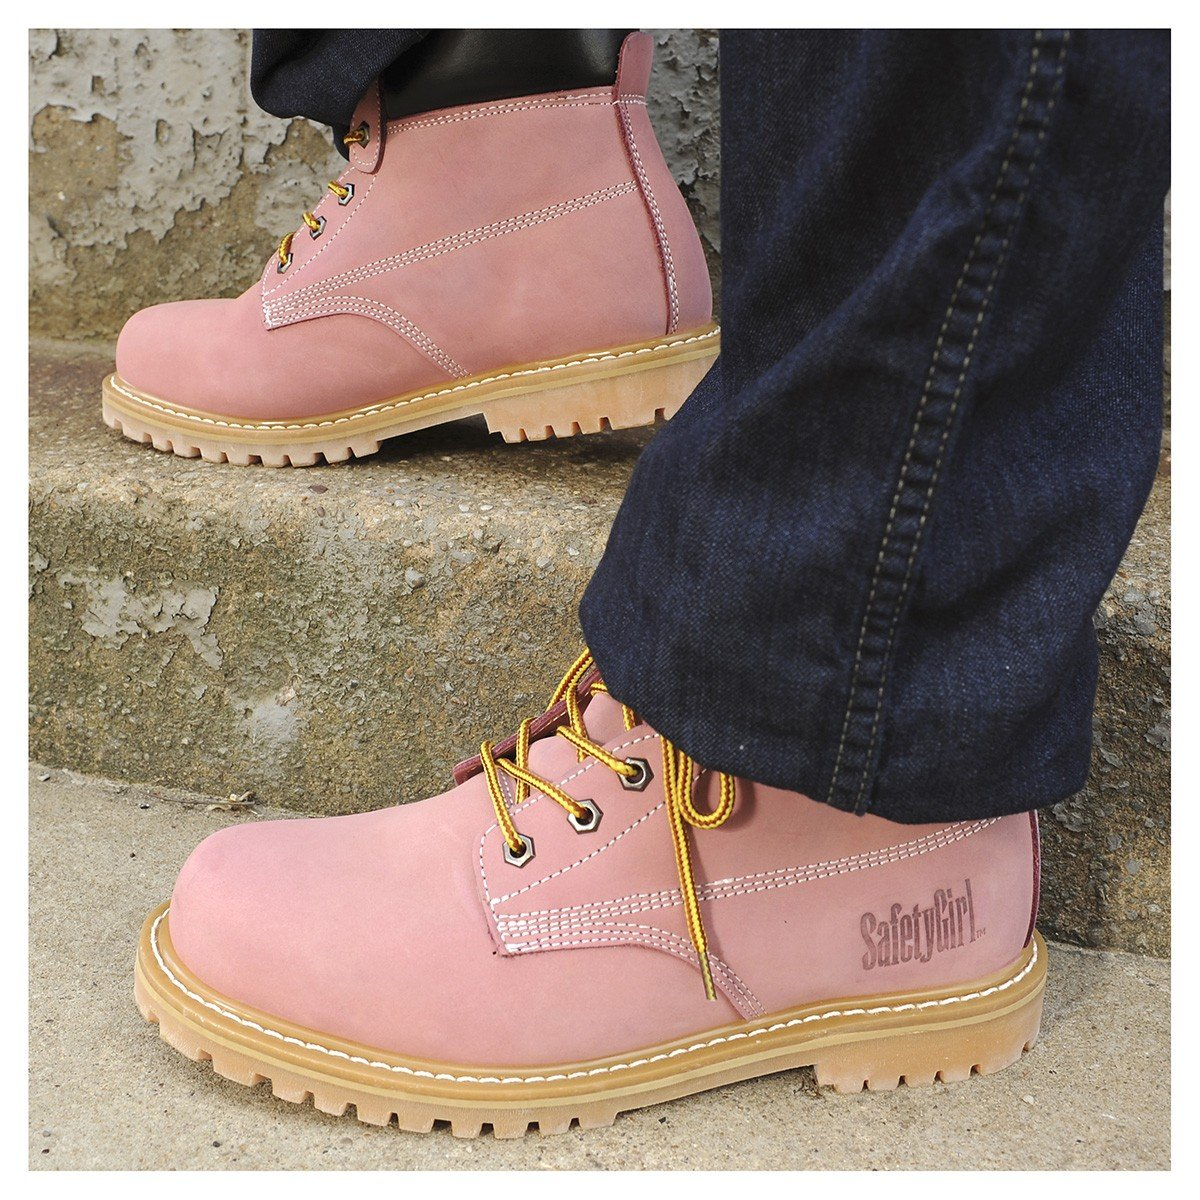 Safety Girl GS003-Lt Pink-9M Steel Toe Work Boots - Light Pink - 9M, English, Capacity, Volume, Leather, 9M, Pink () by Safety Girl (Image #8)